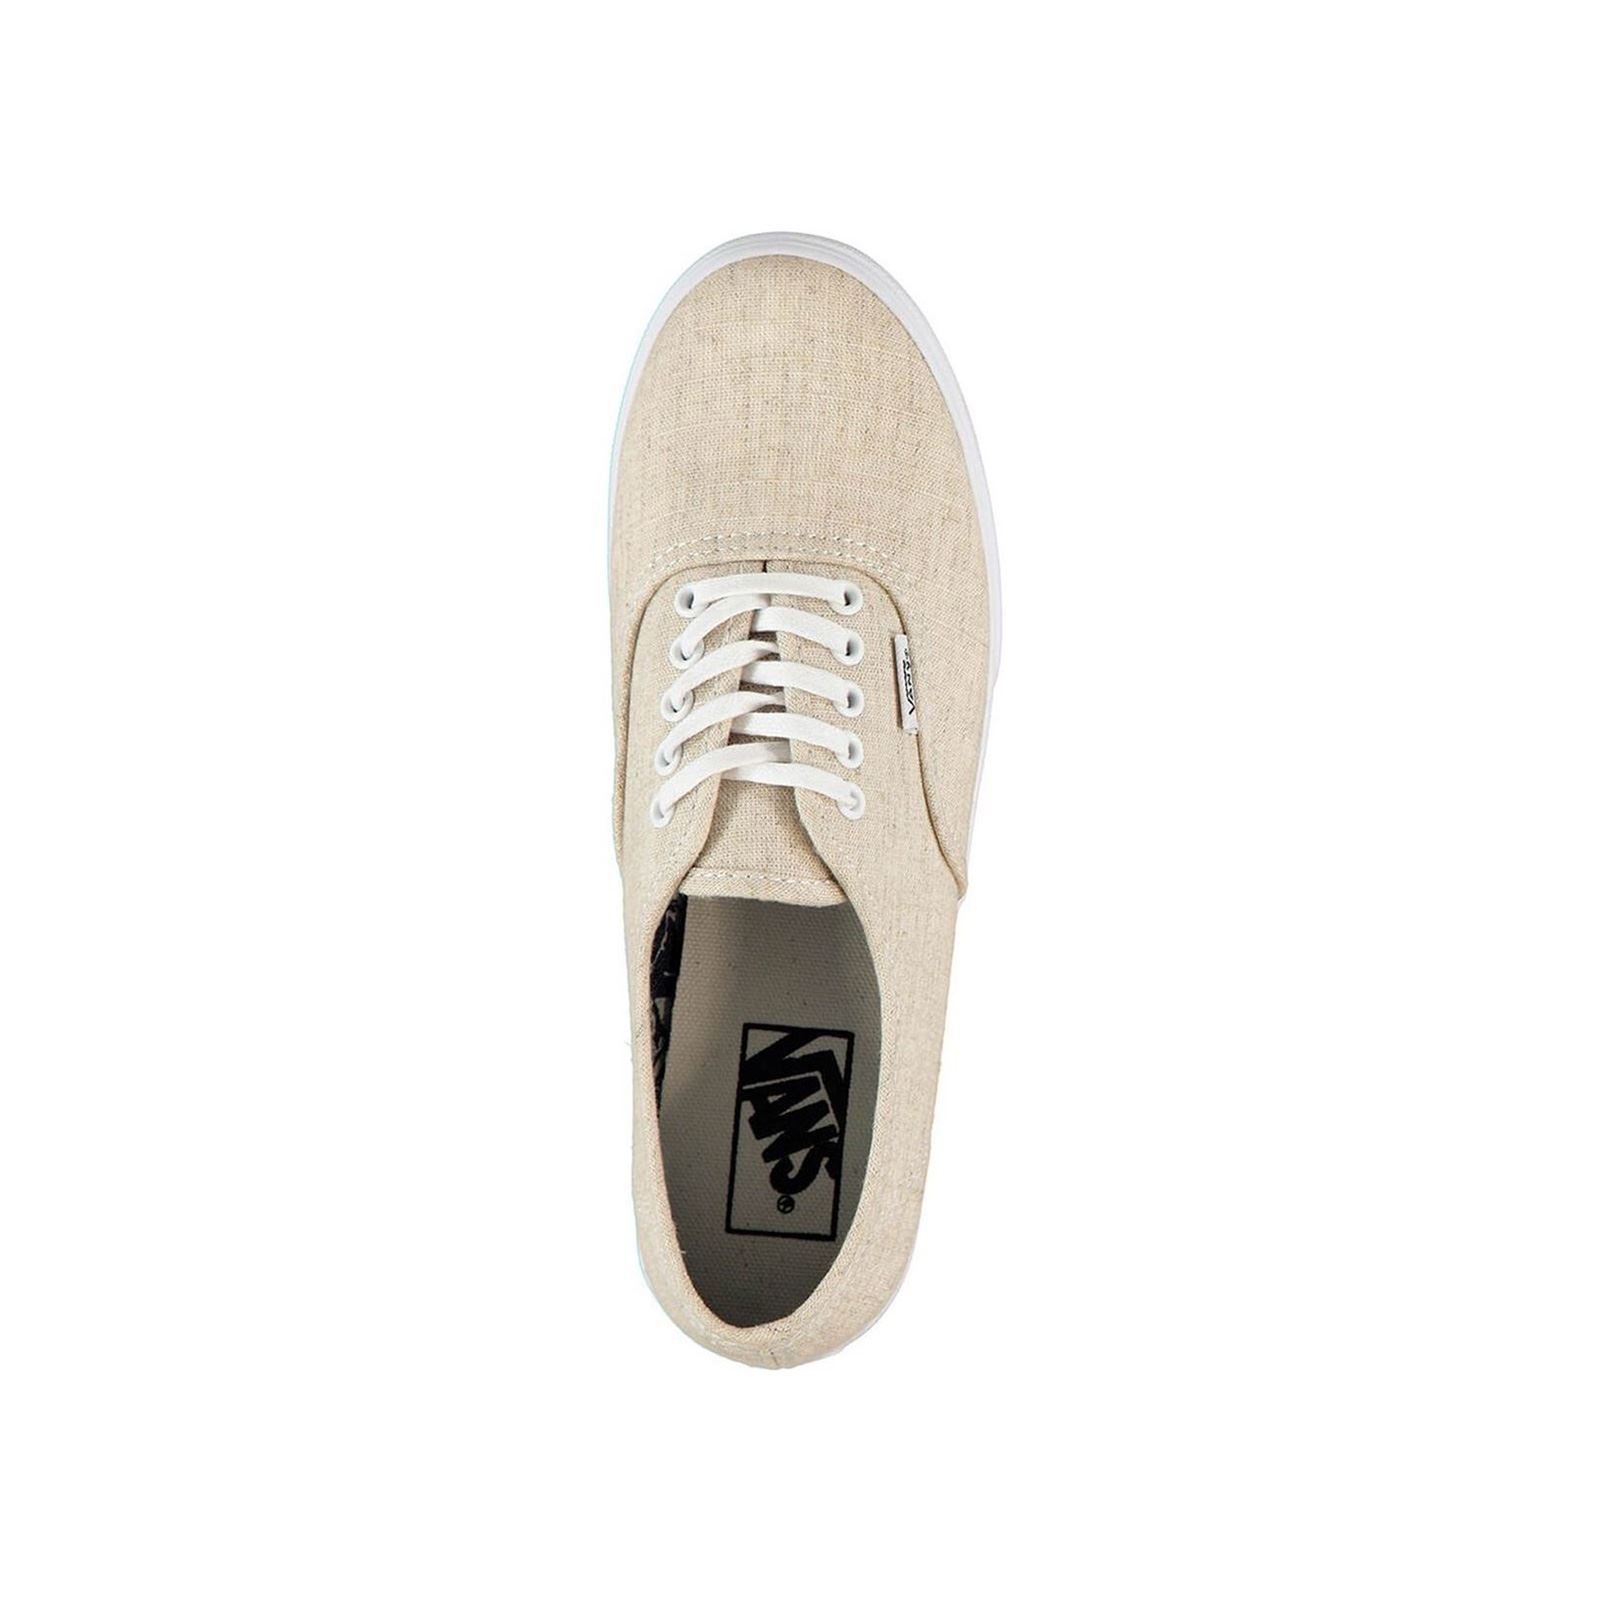 on Authentic Vans Vans Authentic Slip Beige on Vans Slip Beige YXxp75qwW